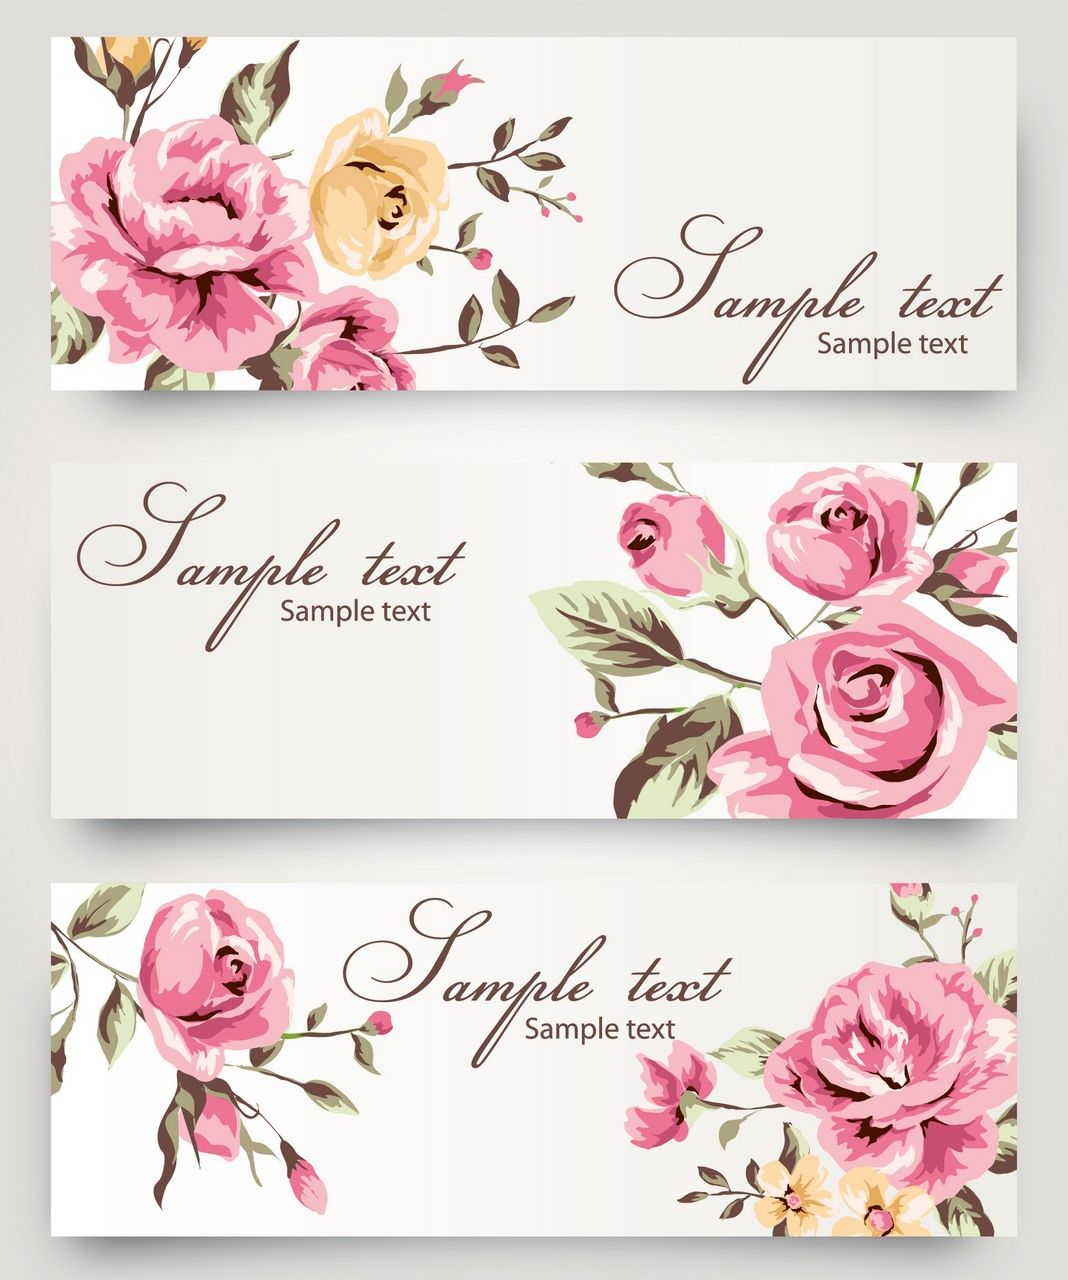 banner 12 flower rose hand painted vector free vector banner label vector pinterest. Black Bedroom Furniture Sets. Home Design Ideas